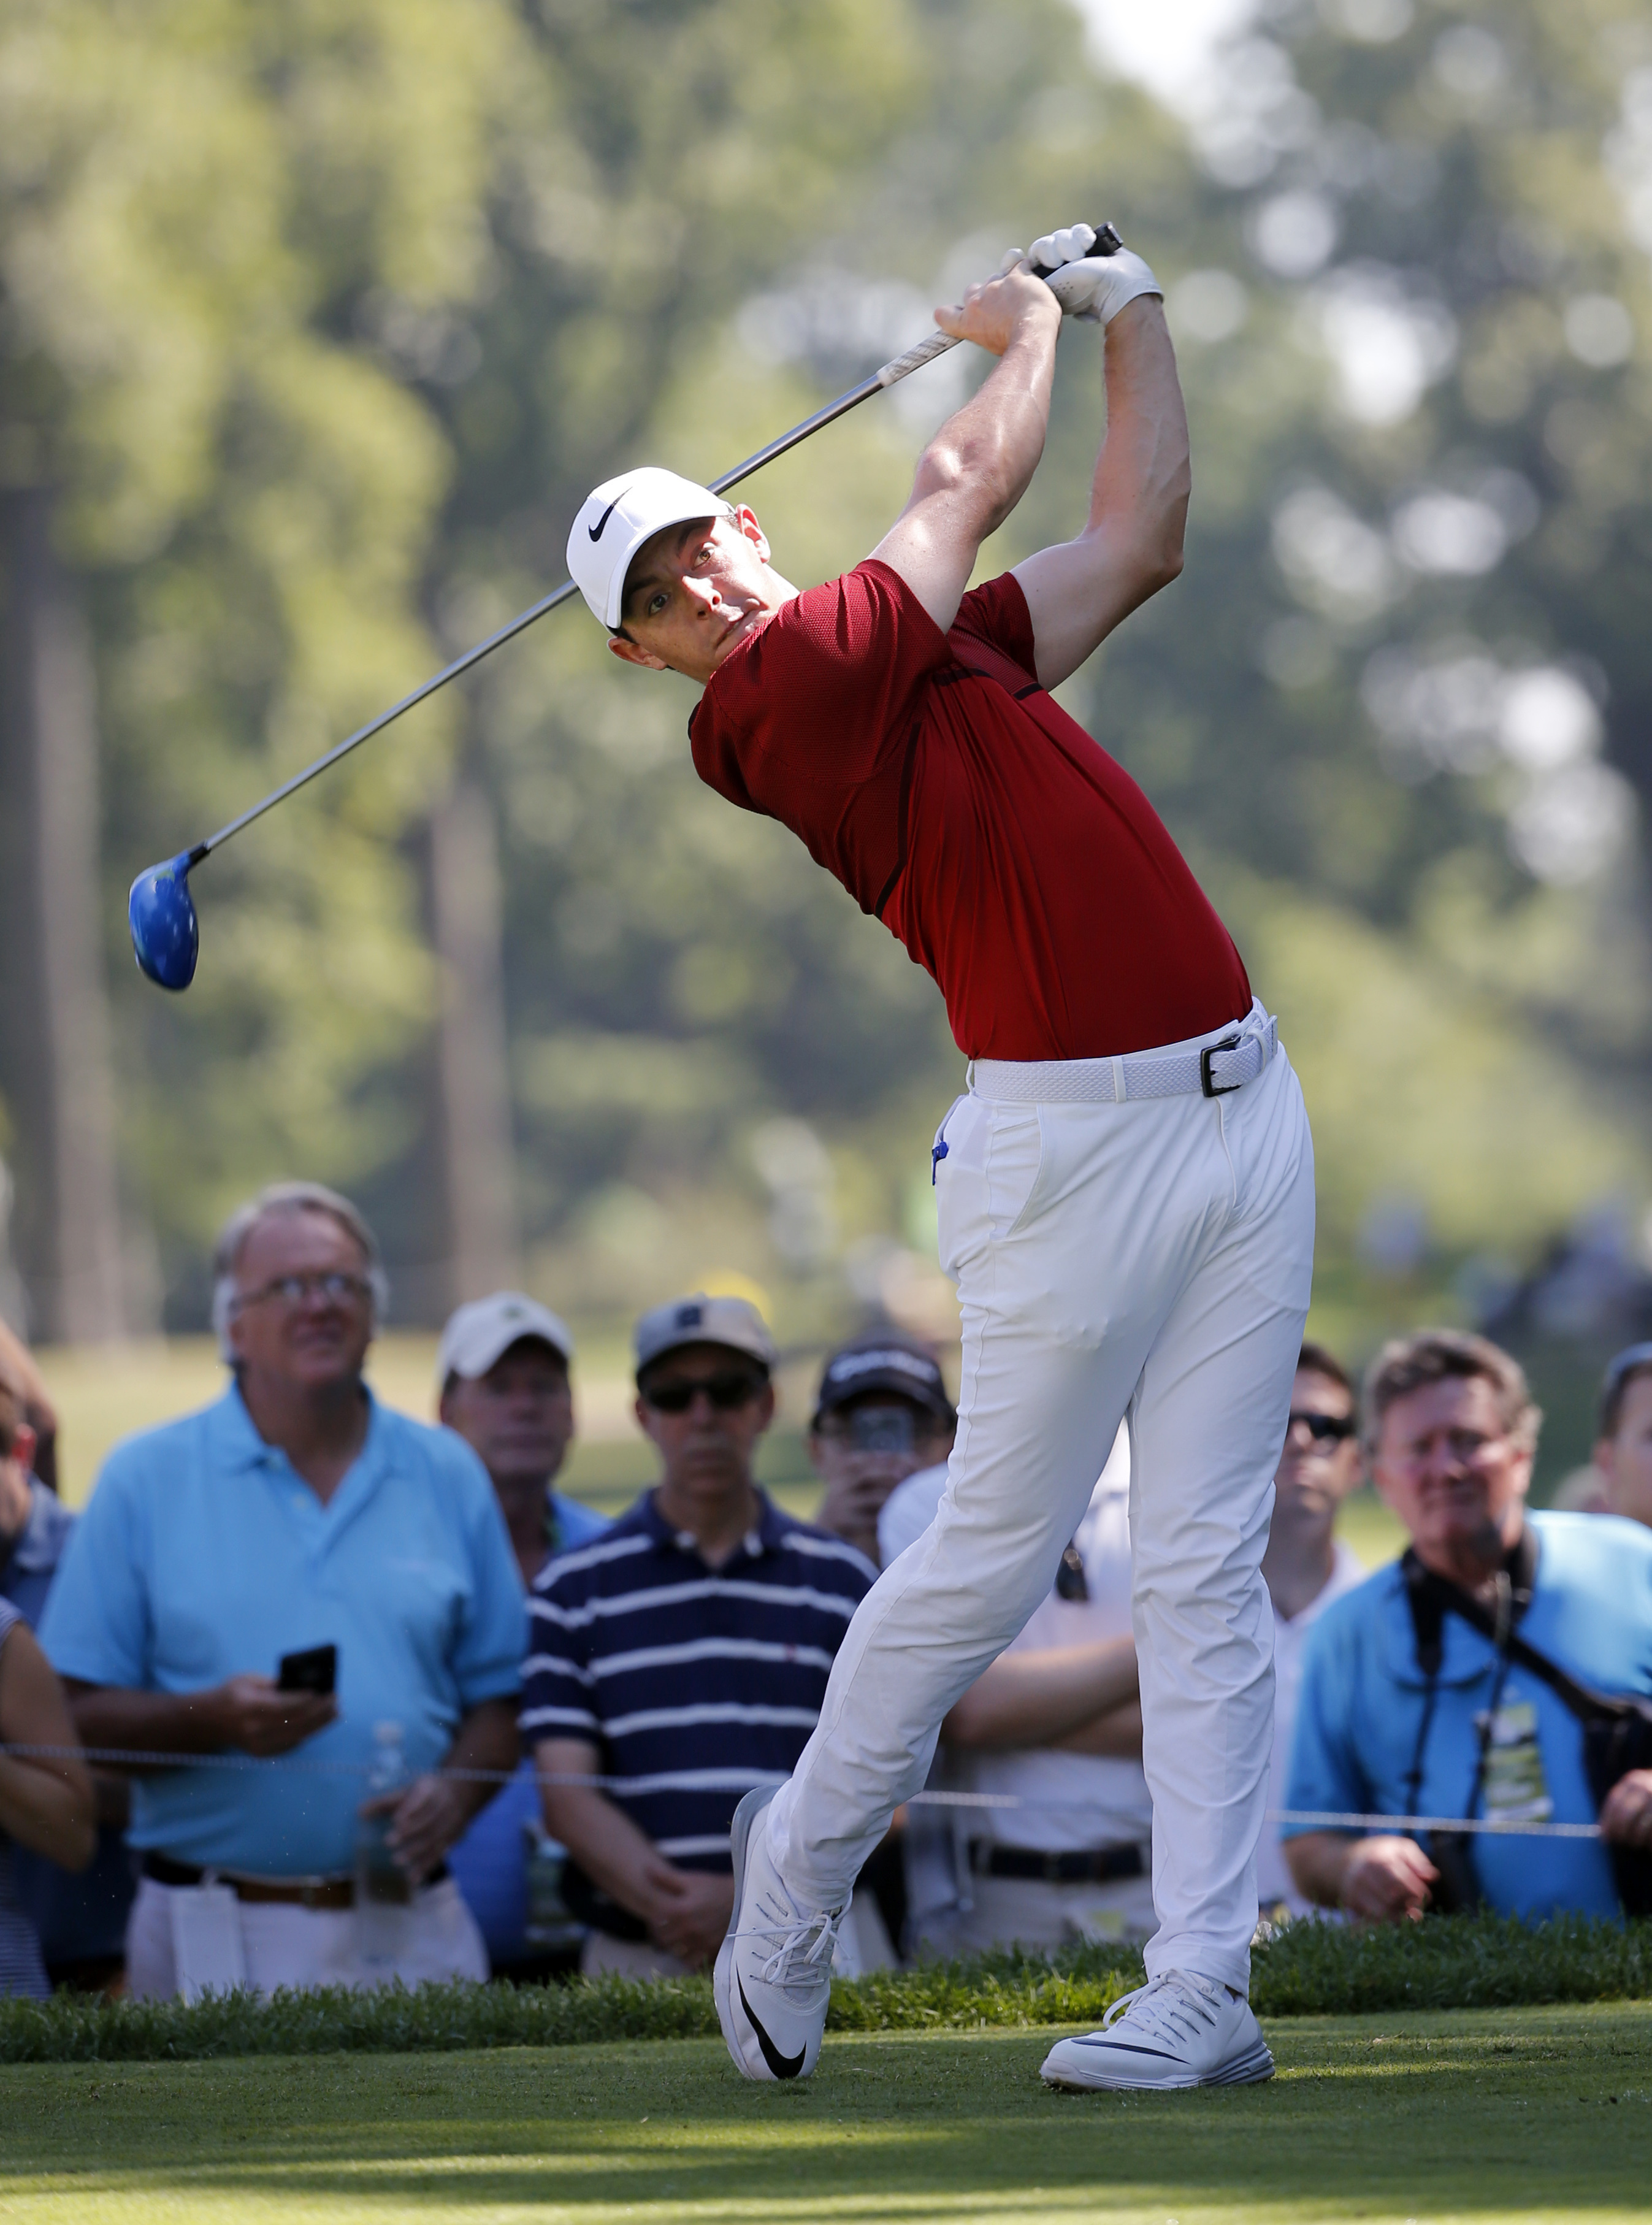 Rory McIlroy watches his tee shot on the sixth hole during a practice round for the PGA Championship golf tournament at Baltusrol Golf Club in Springfield, N.J., Tuesday, July 26, 2016. (AP Photo/Mike Groll)